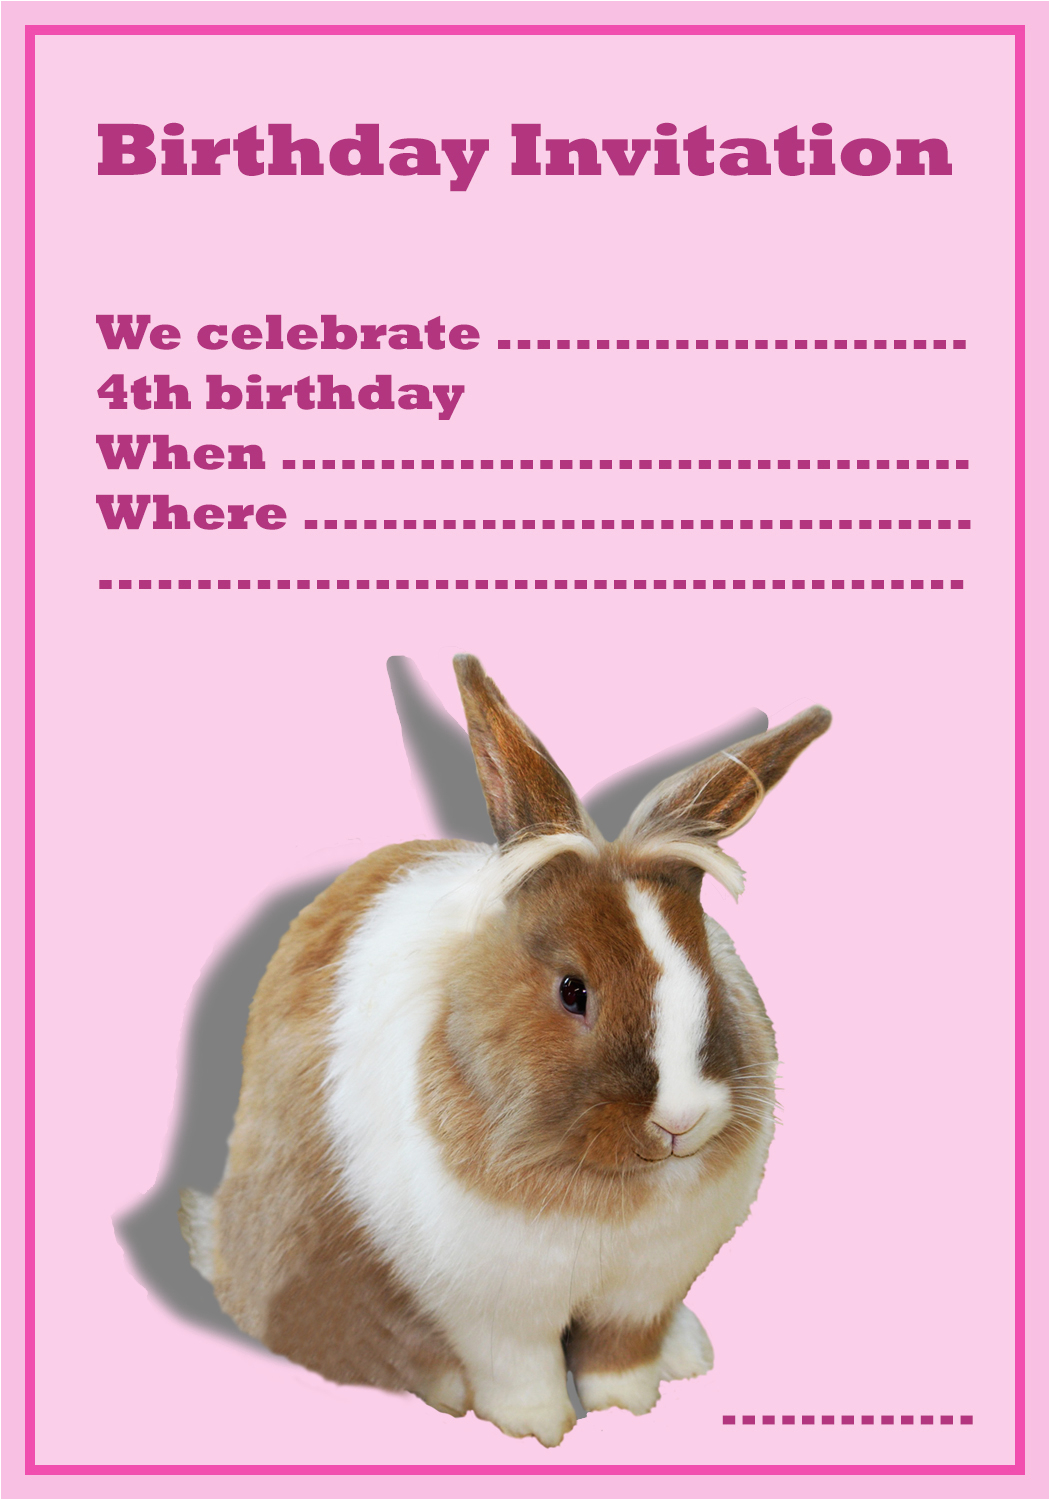 Bunny Birthday Invitation Template Free For The